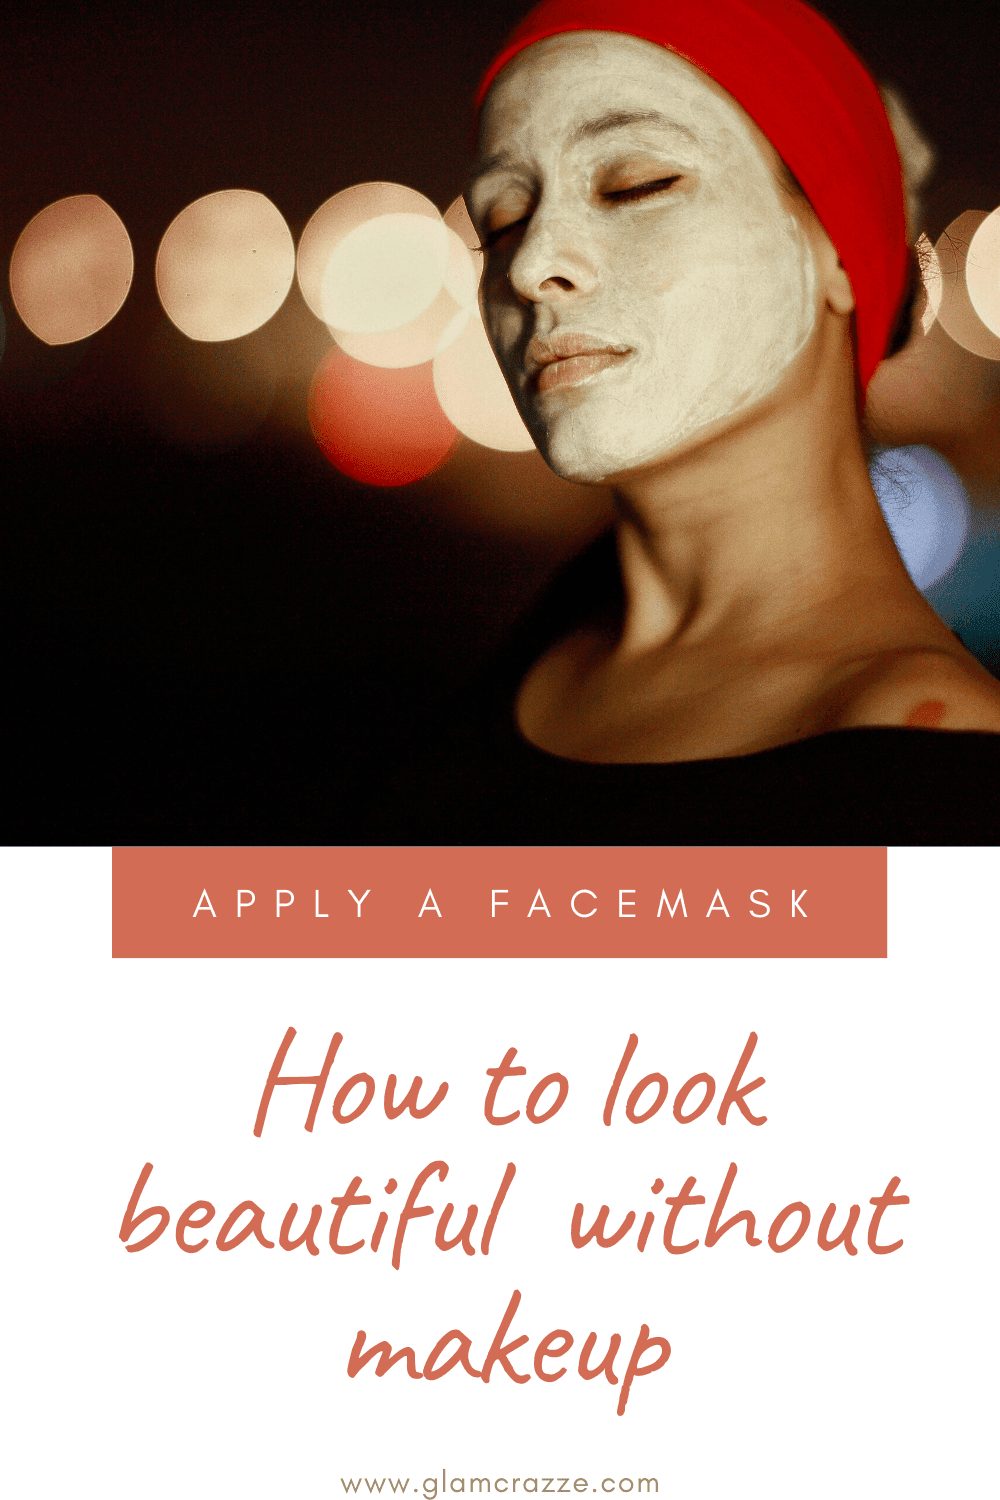 How to look beautiful without makeup is by using facemask for glowing skin